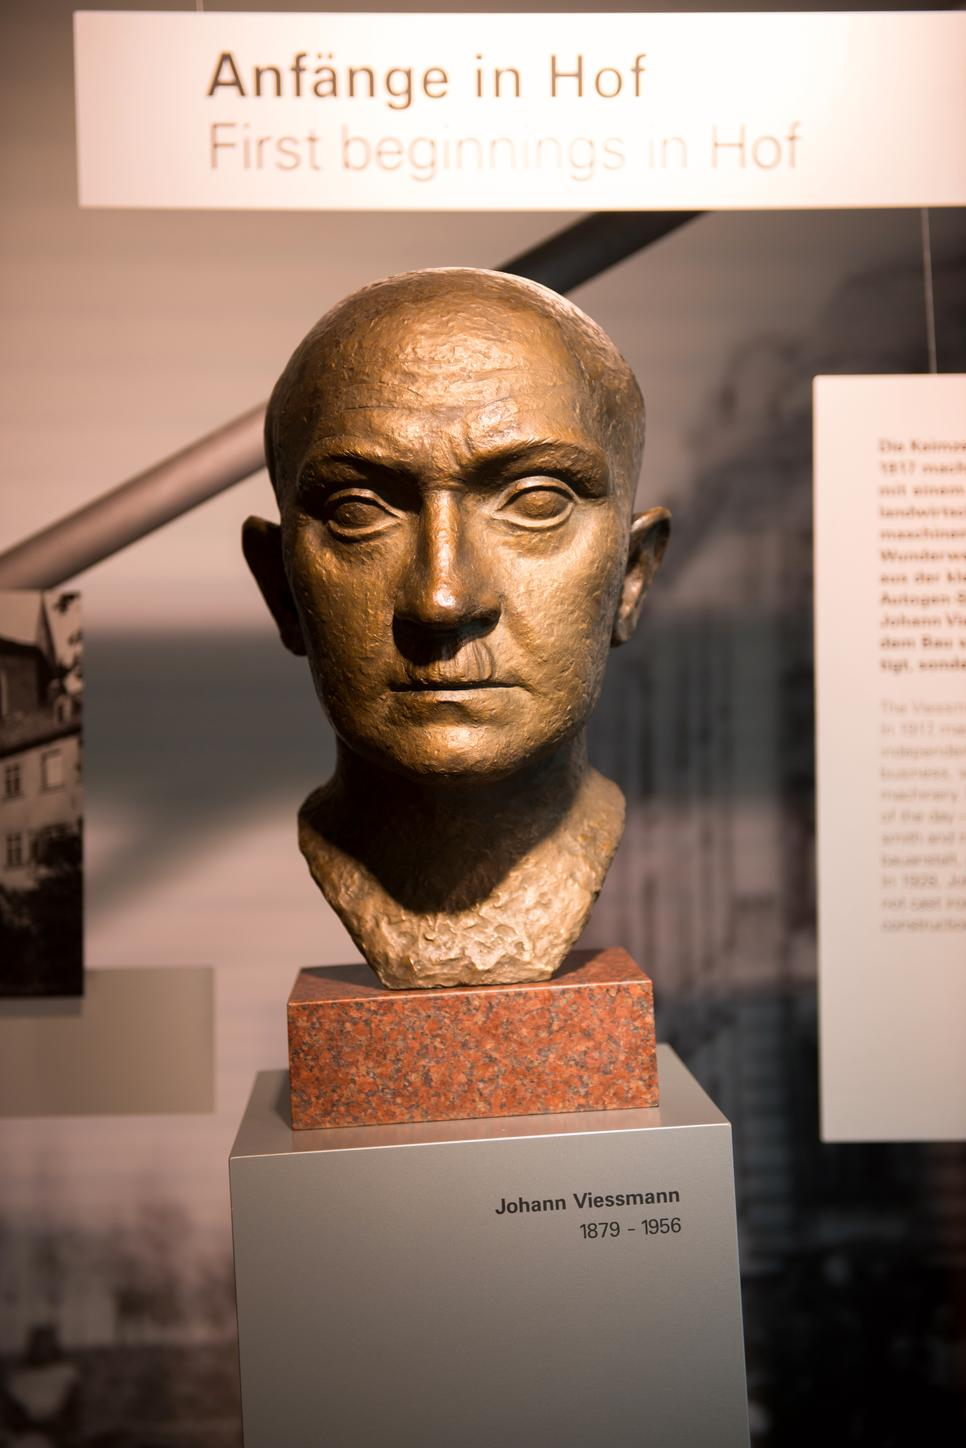 The picture shows a bust of Johann Viessmann.